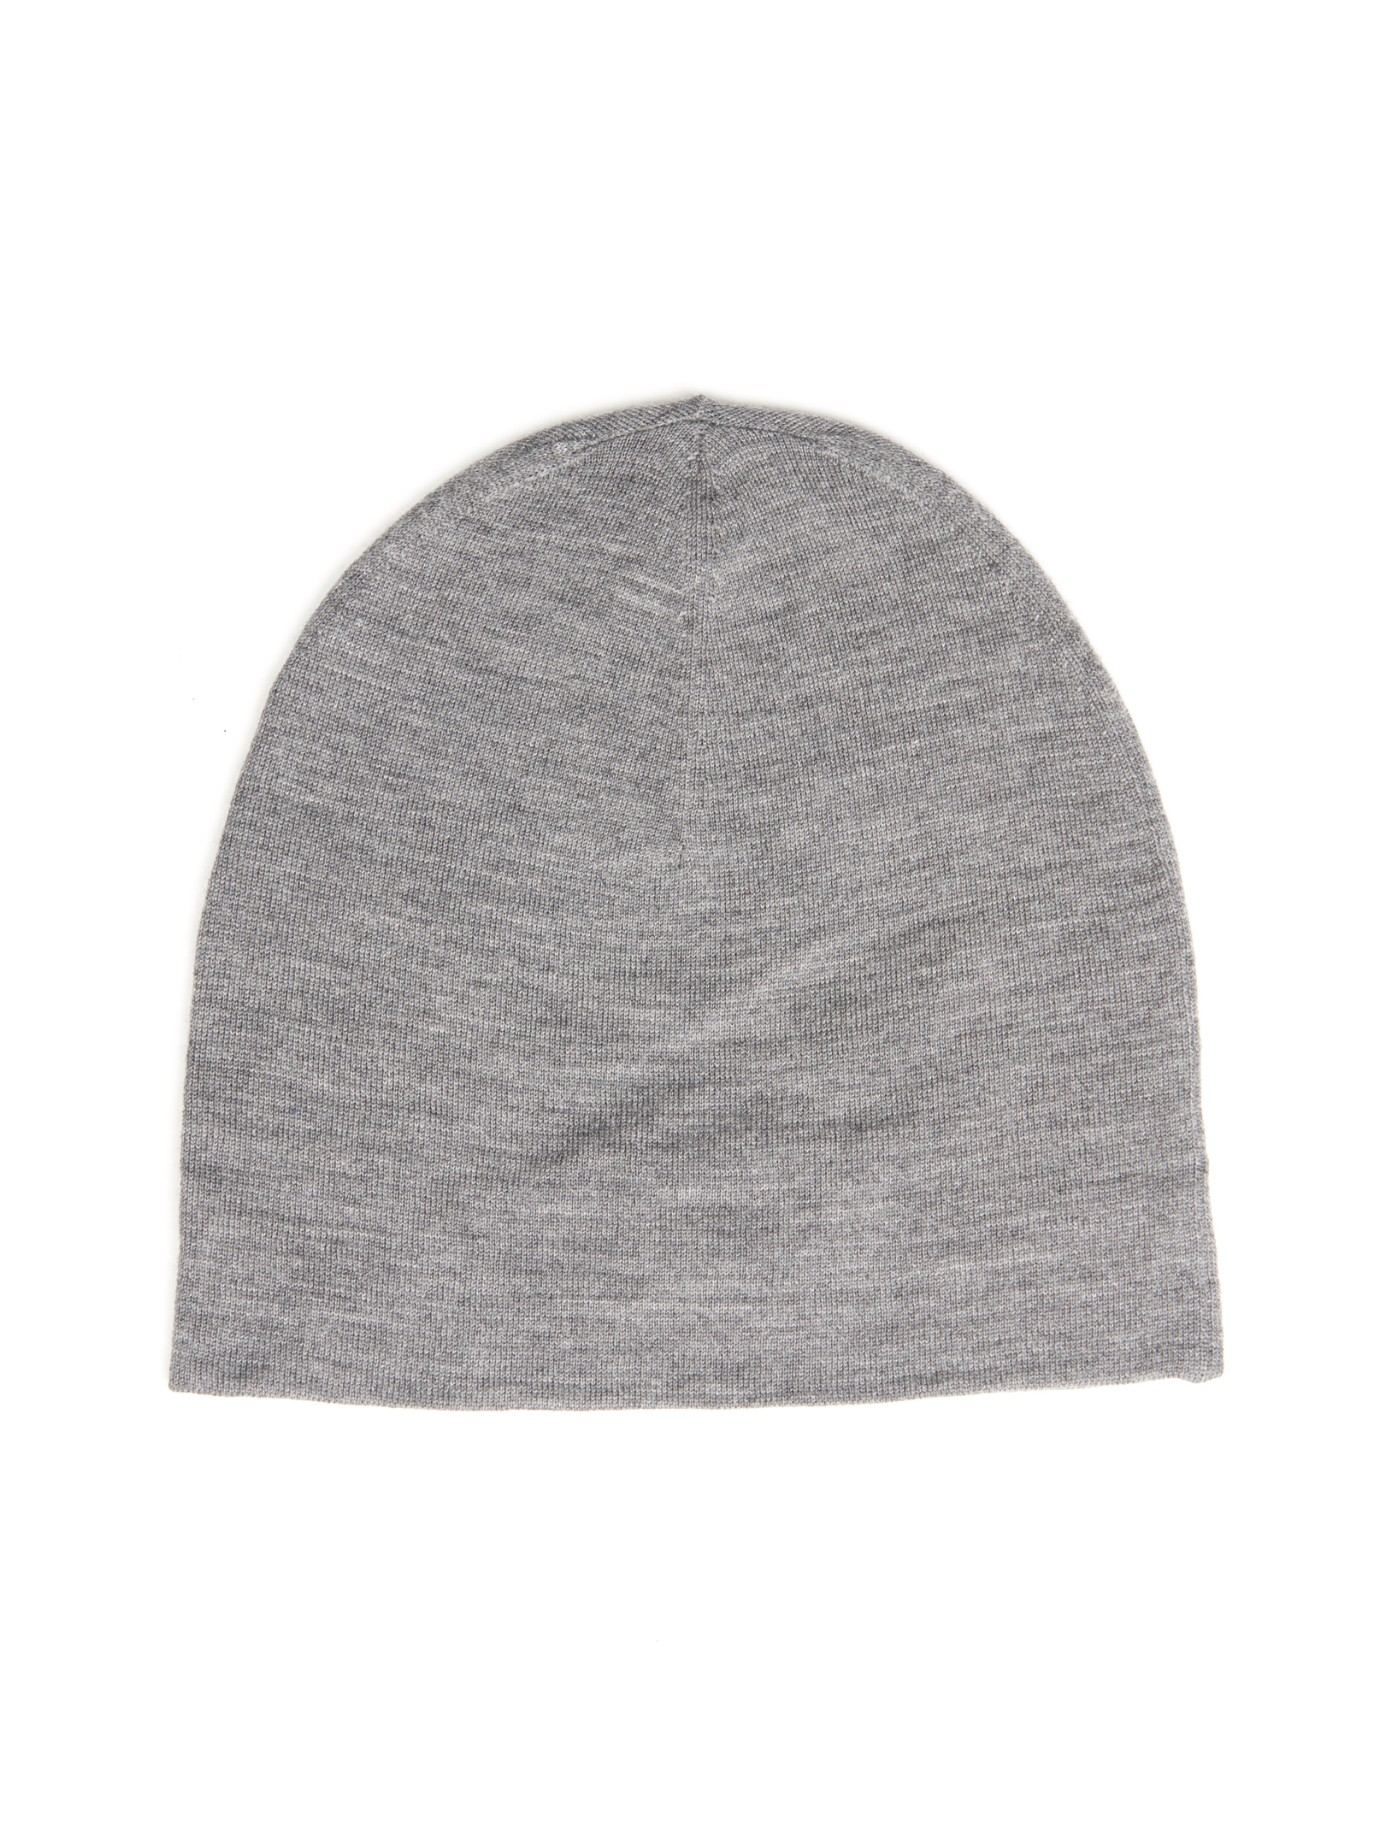 acne nils hat